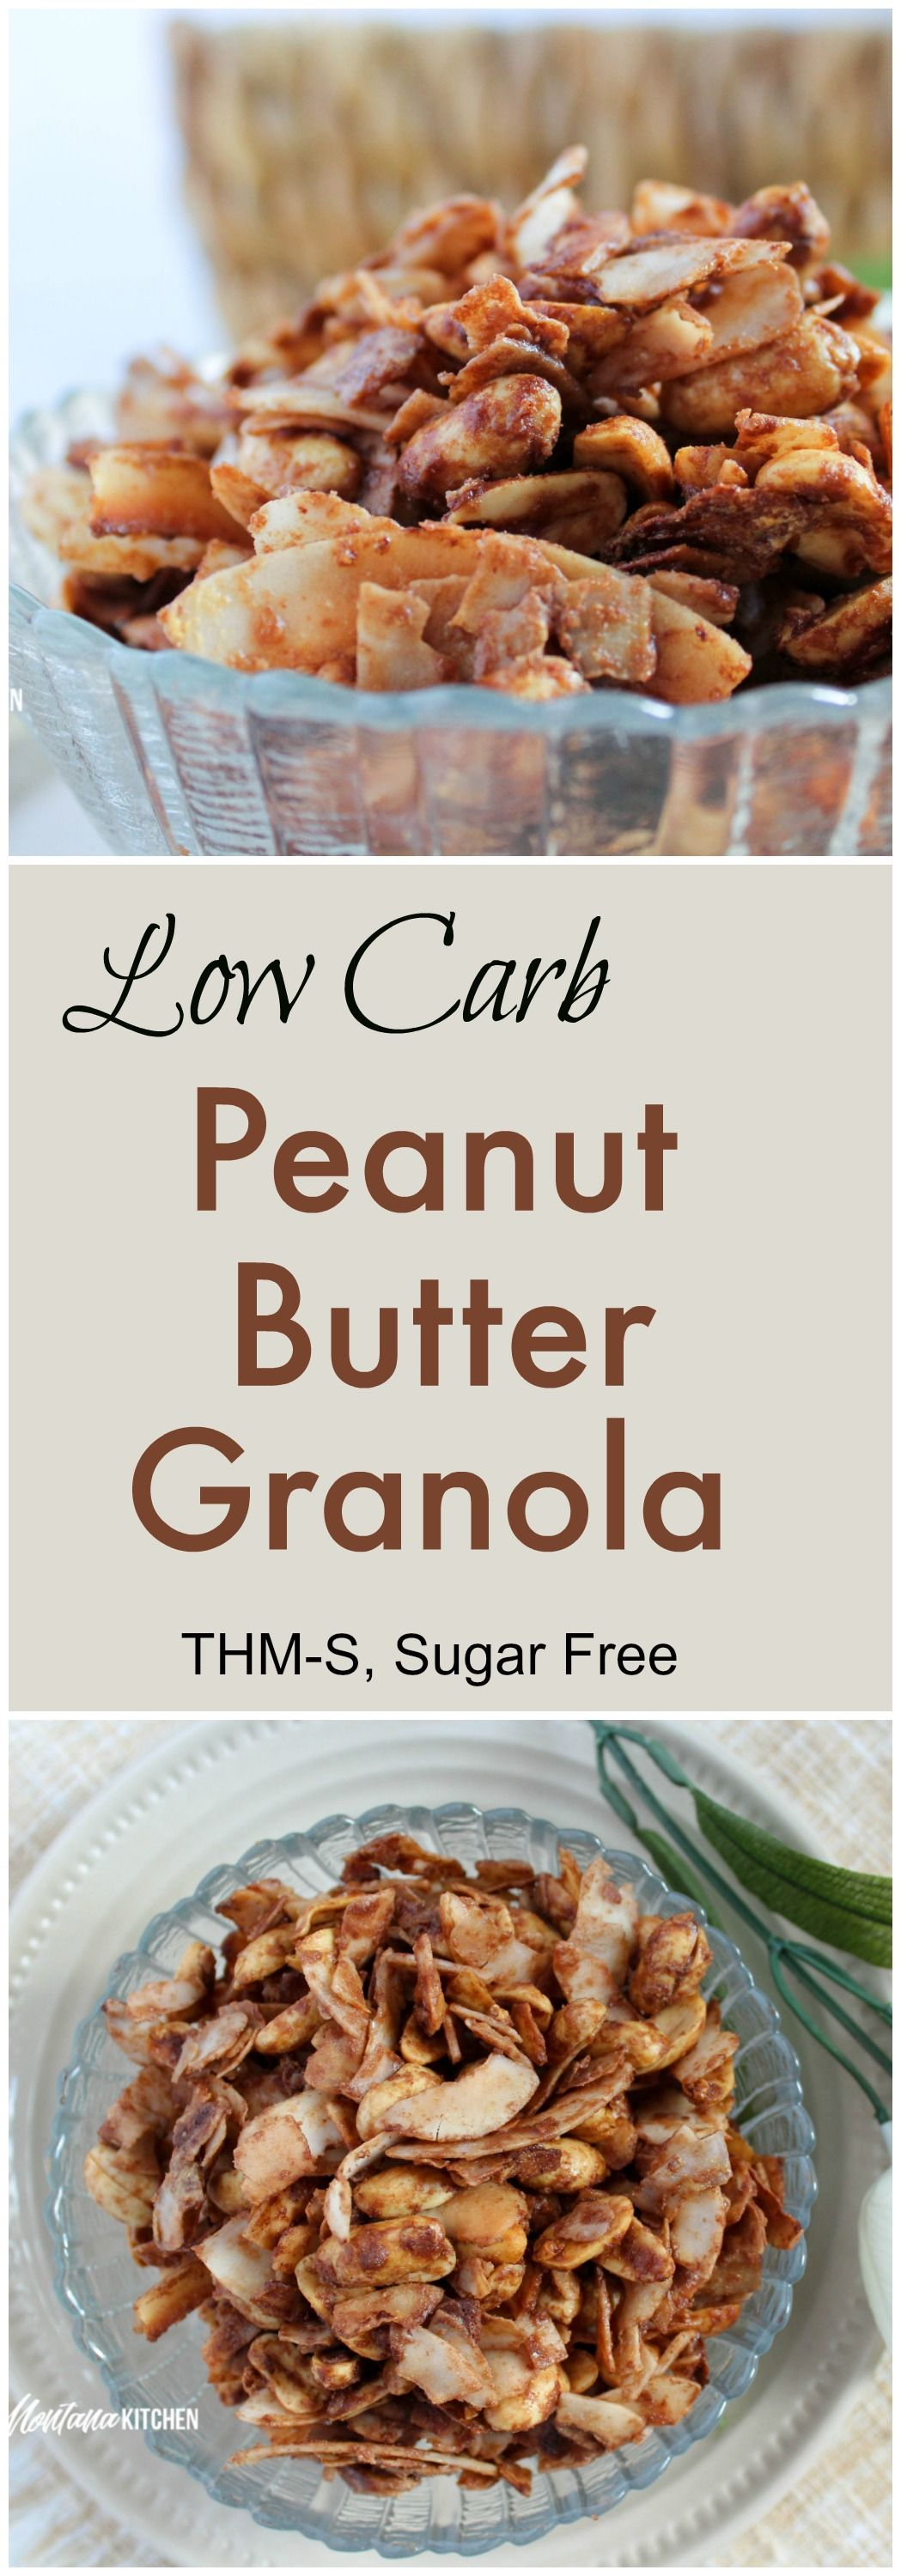 Low Carb Peanut Butter Granola (Sugar Free, THM-S) - My Montana Kitchen | THM in 2019 | Low carb ...